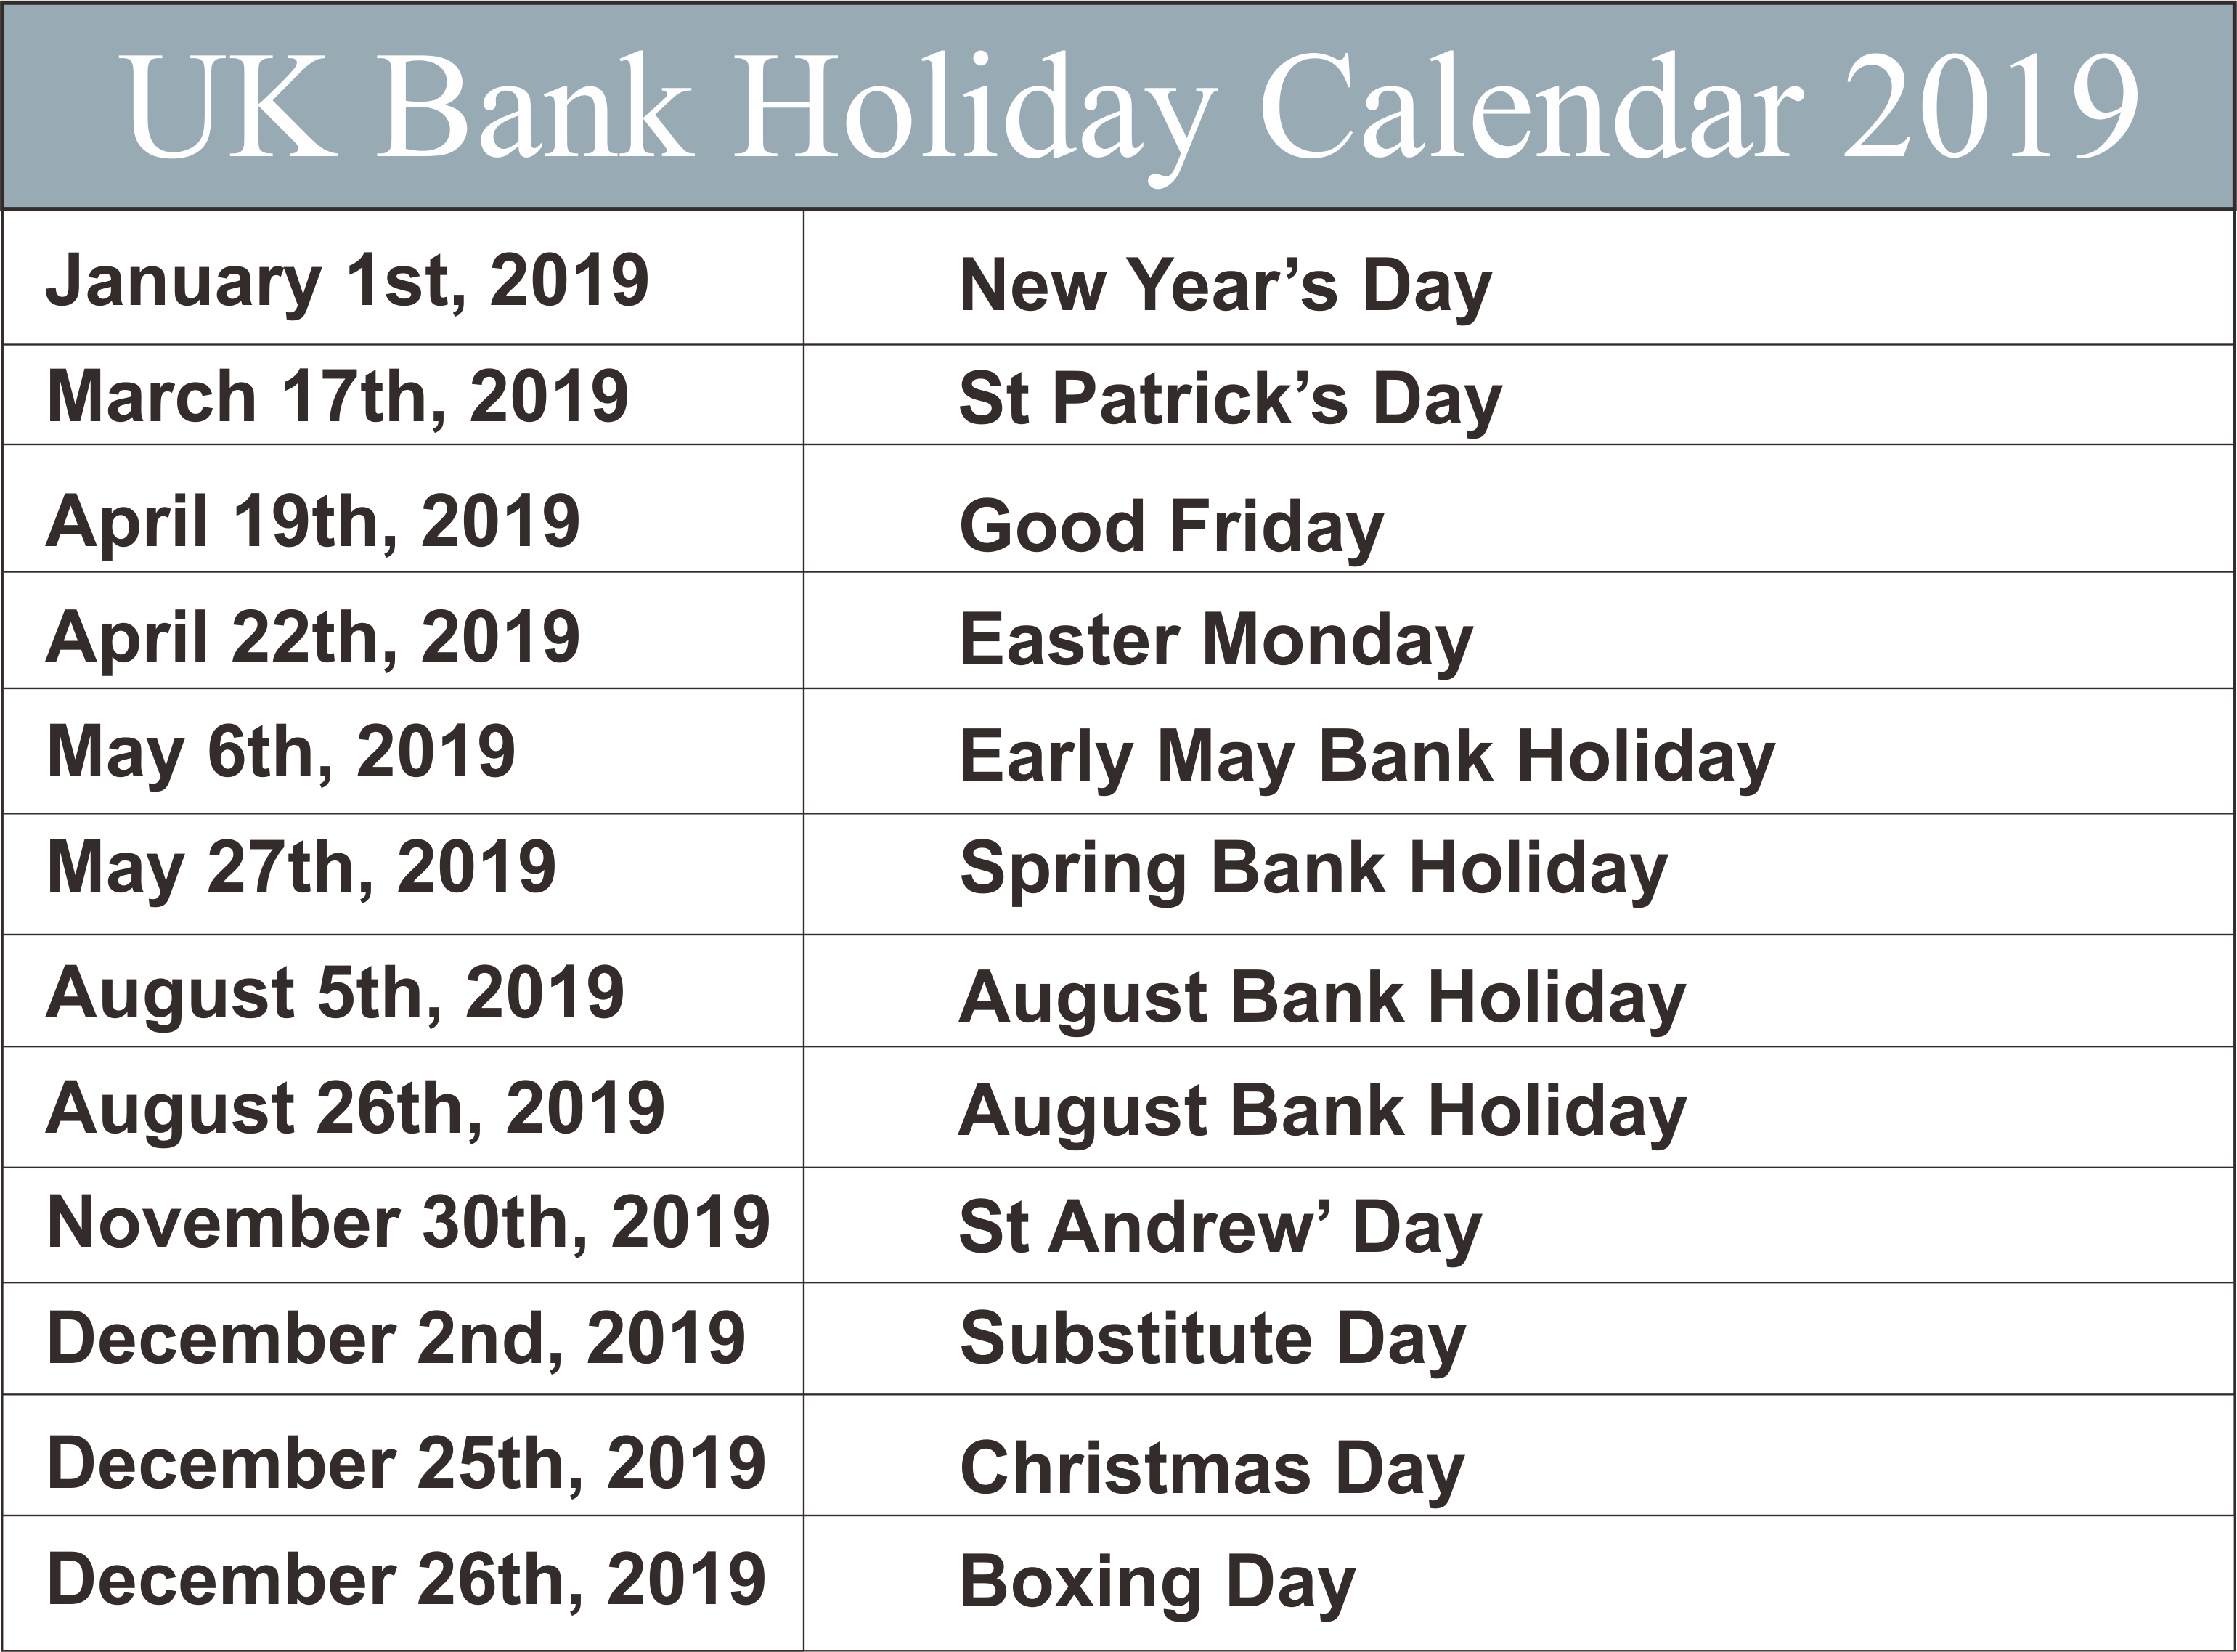 UK Bank Holidays Calendar 2019 National holiday calendar